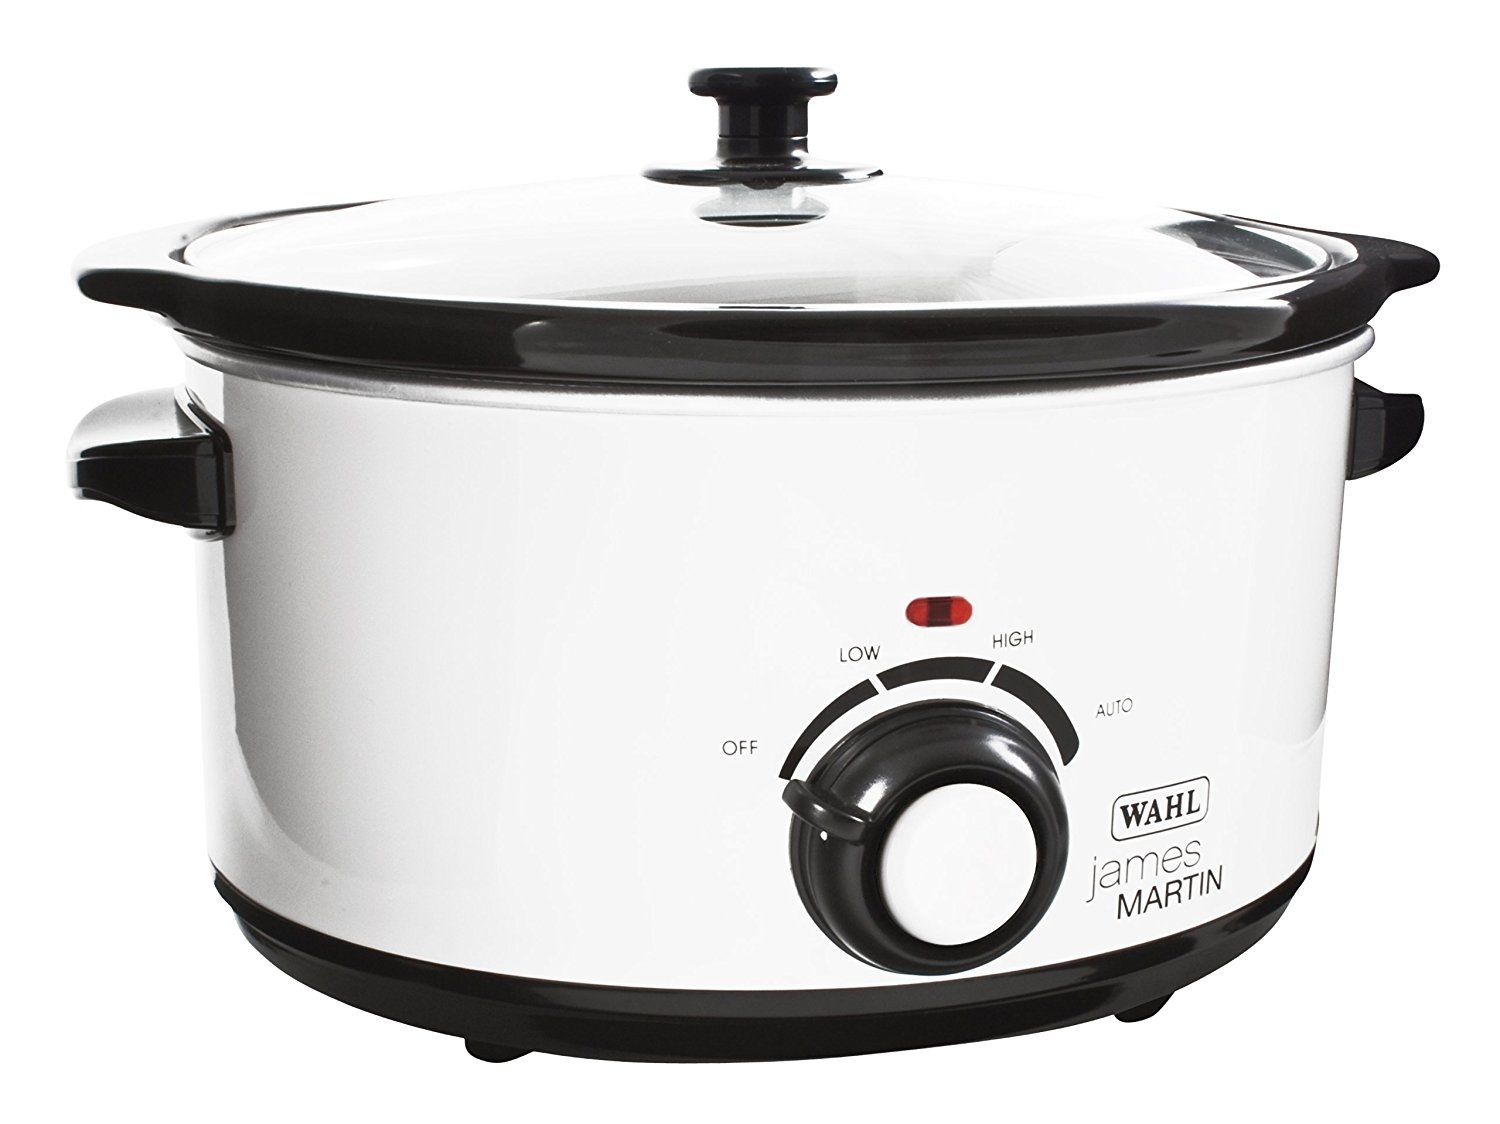 James martin by wahl zx slow cooker l amazon kitchen